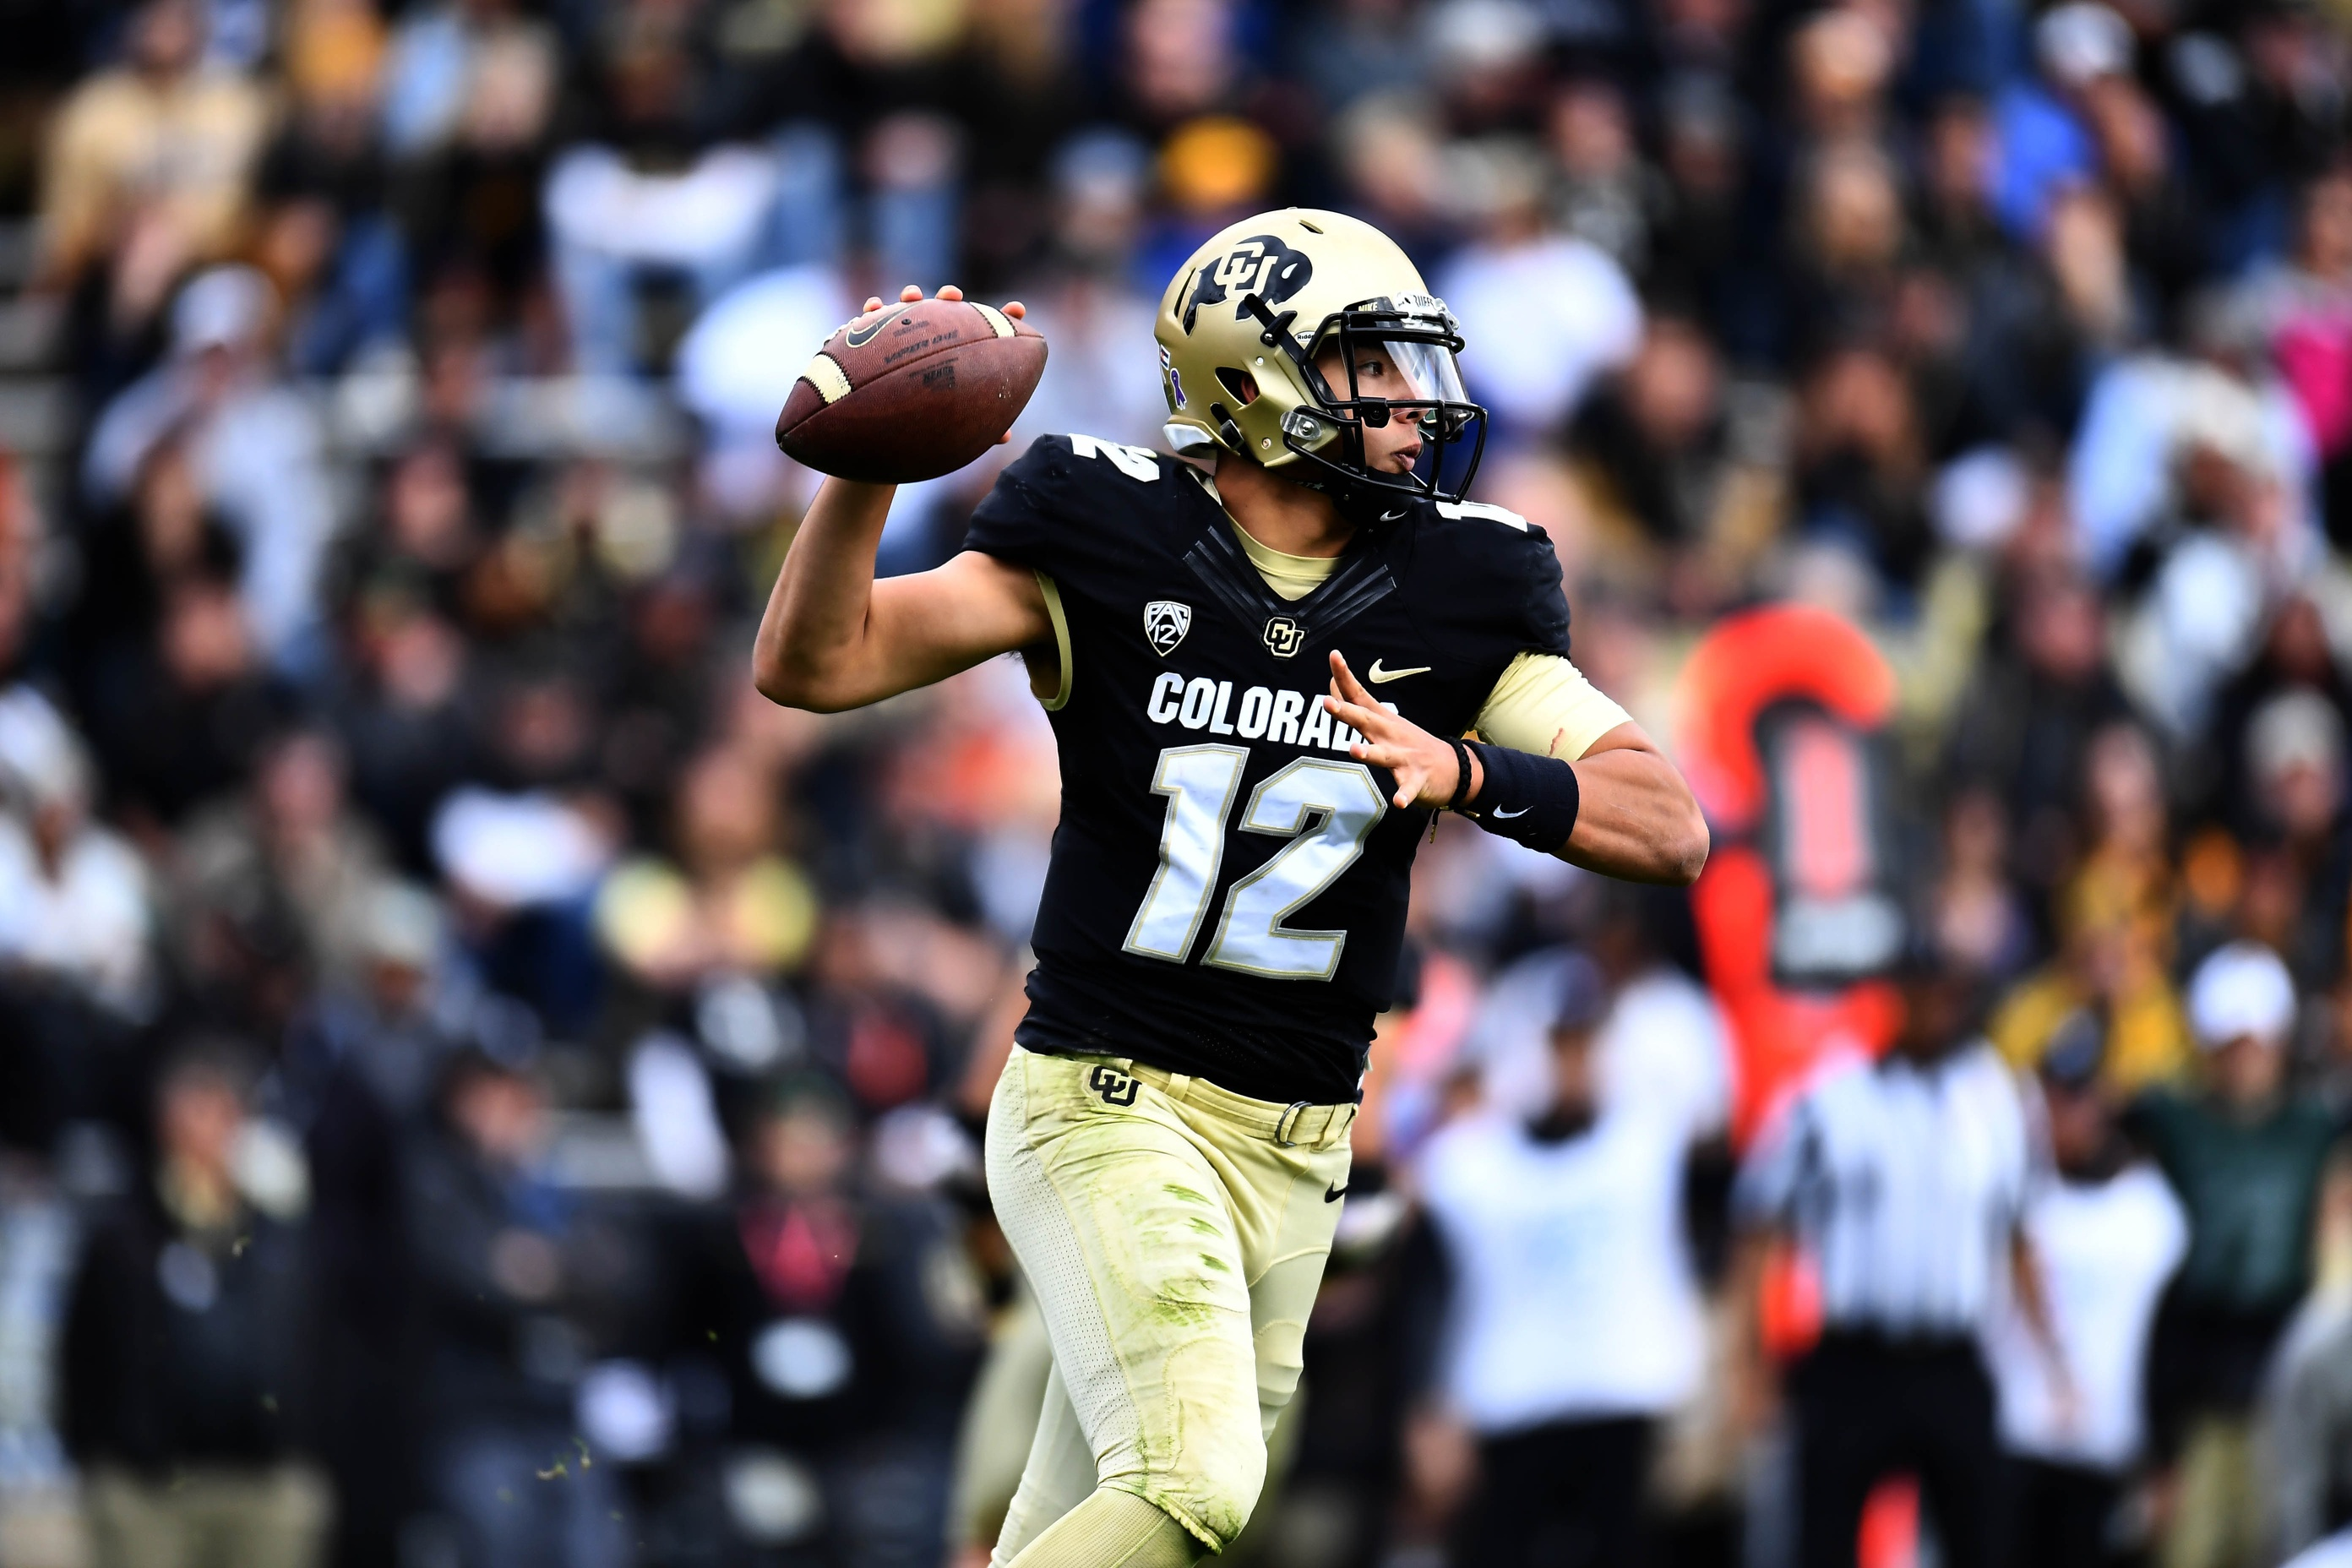 On The Field Montez Shines As Buffs Handle Bears Mile